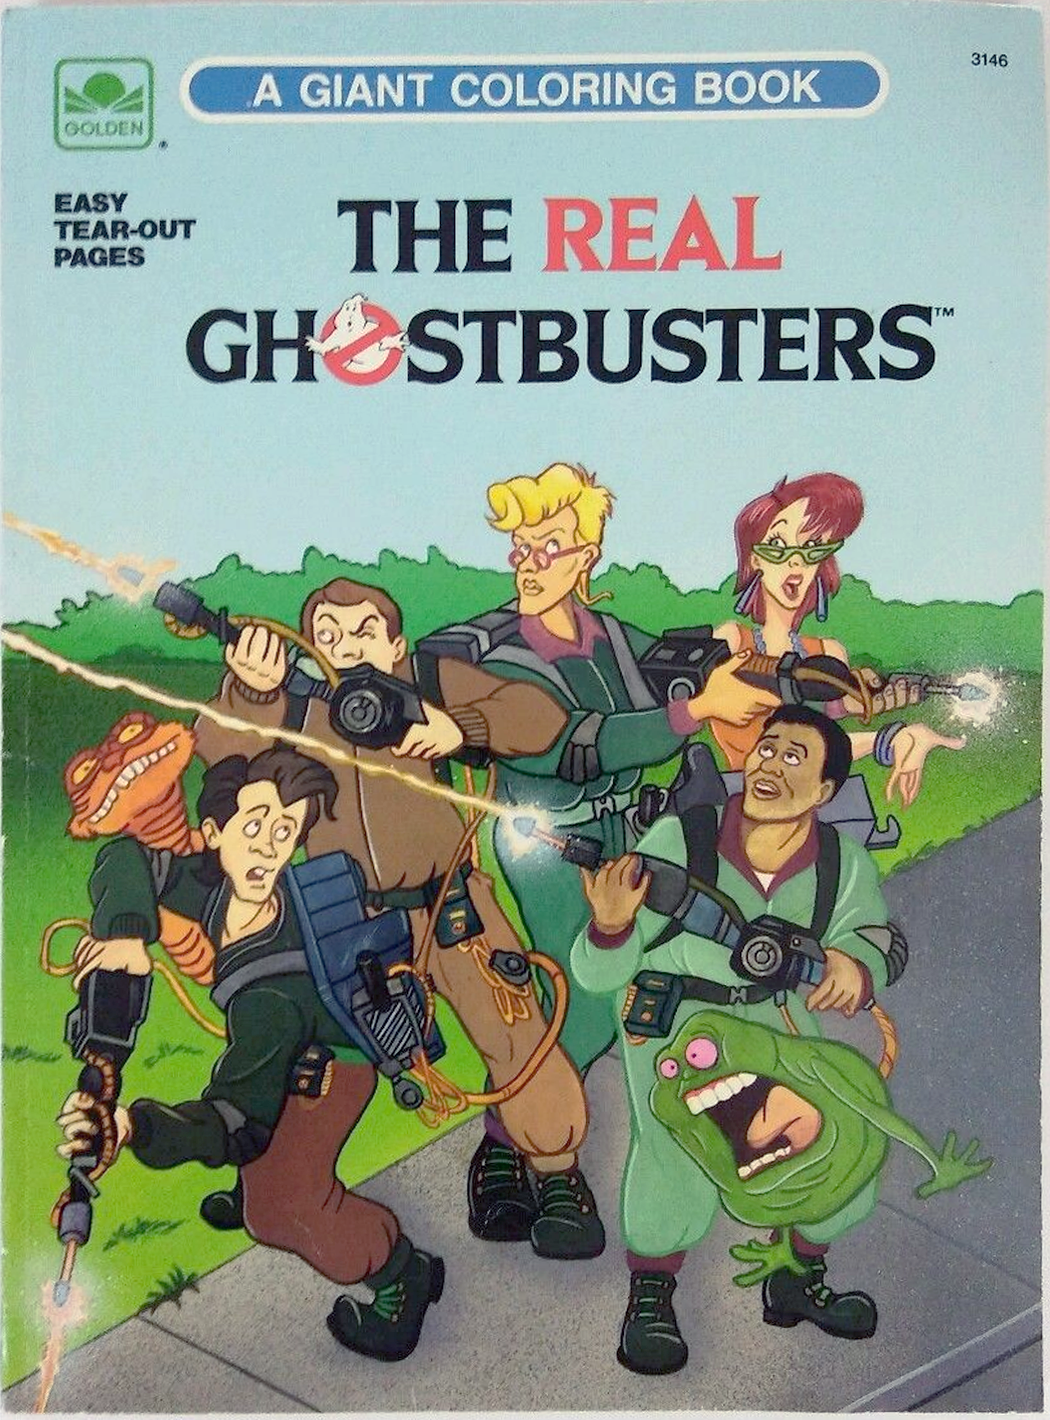 The Real Ghostbusters: A Giant Coloring Book | Ghostbusters Wiki ...